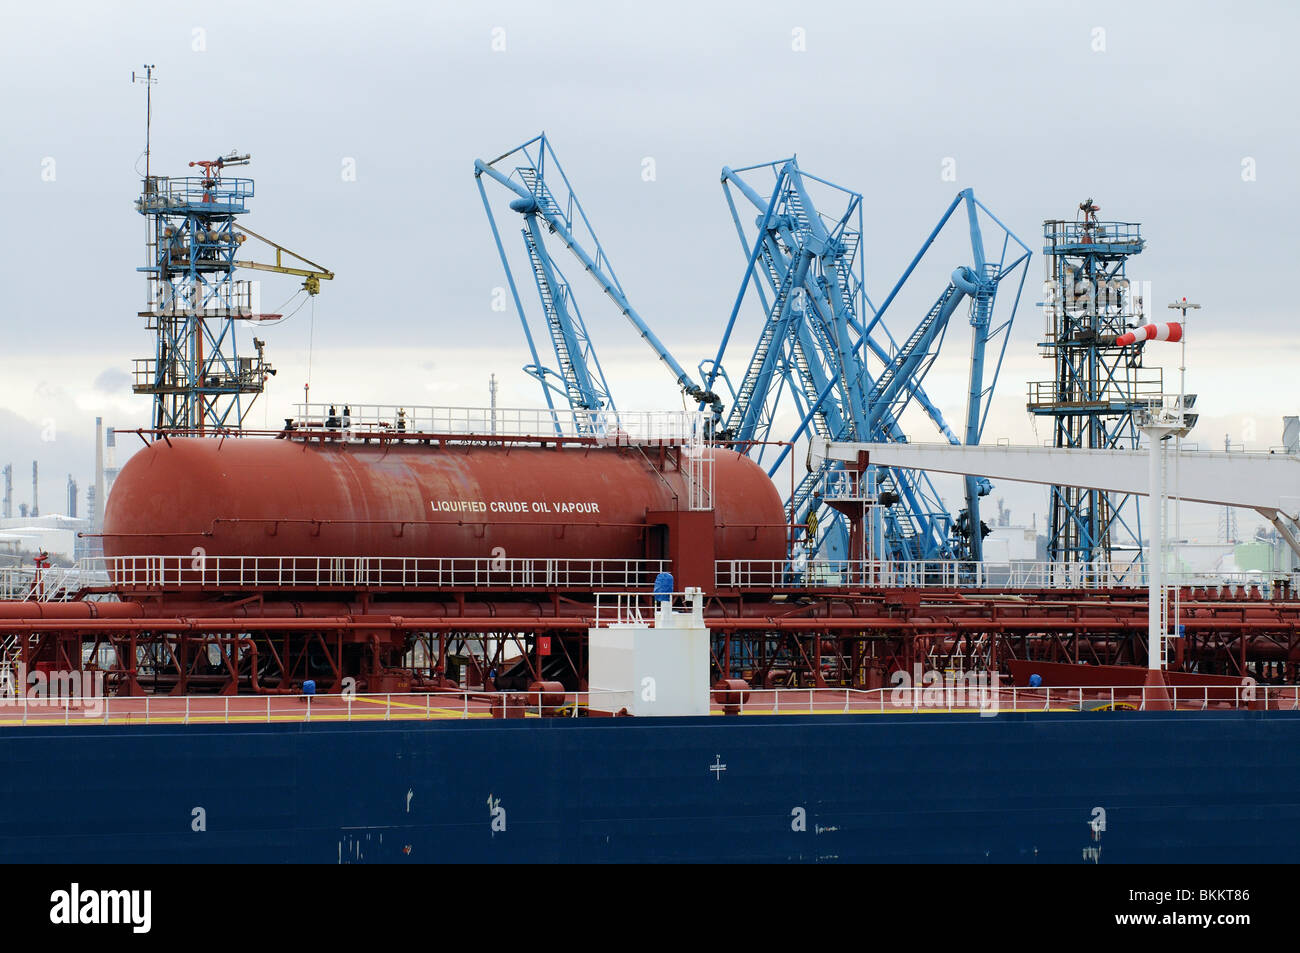 FMT Fawley Marine Terminal Southampton Water England UK A liquified crude oil vapour tank onboard  tanker moored - Stock Image